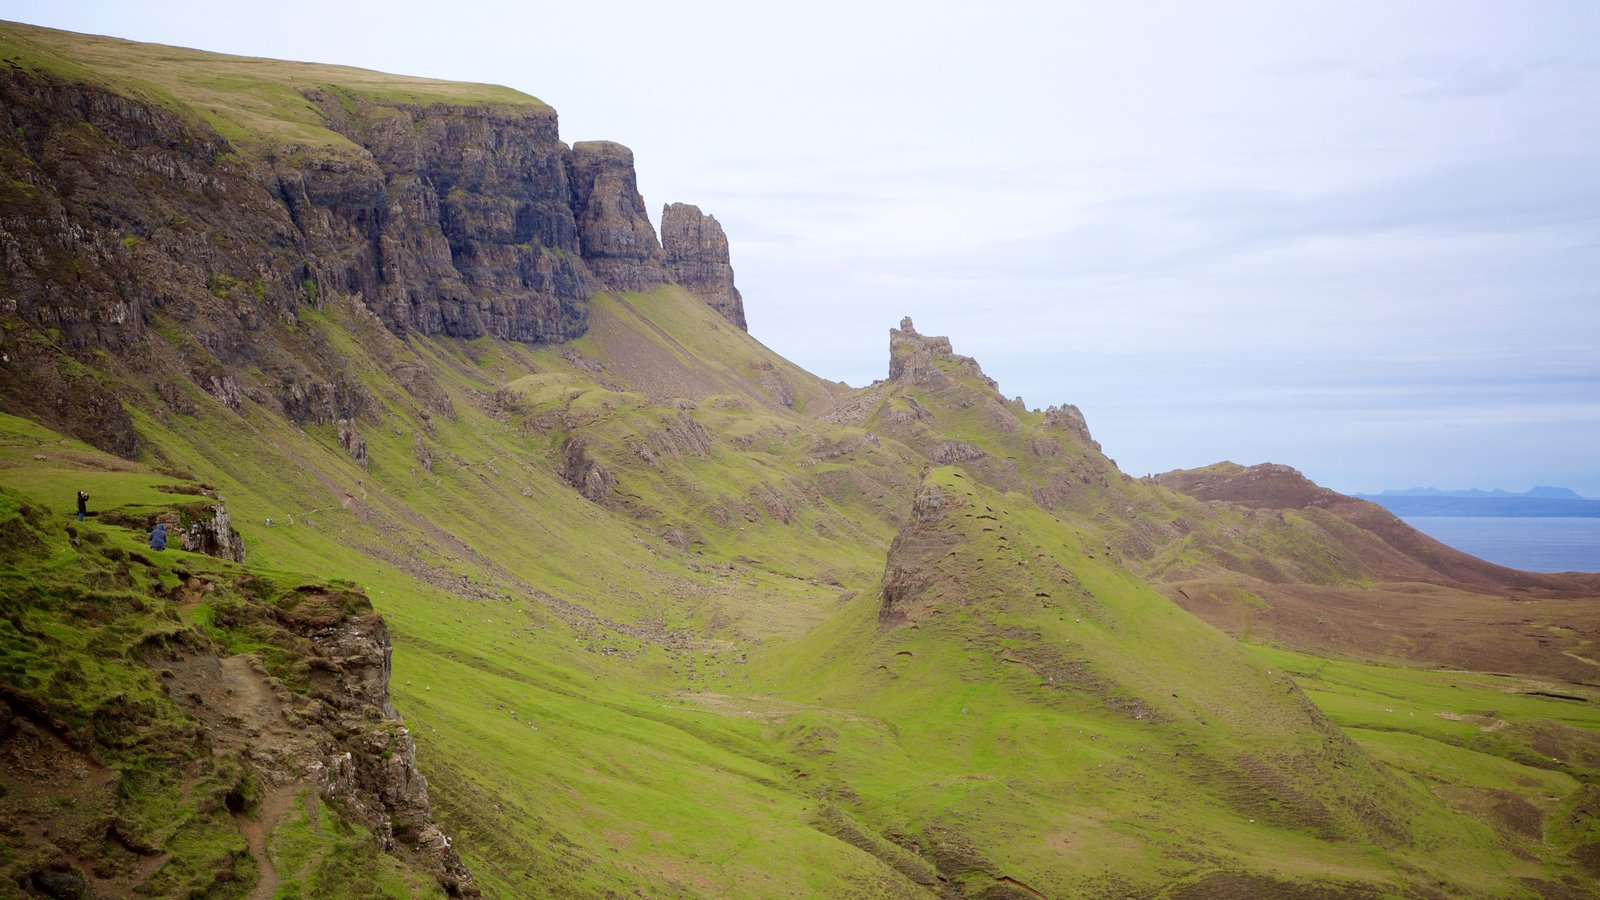 Quiraing featuring mountains and tranquil scenes